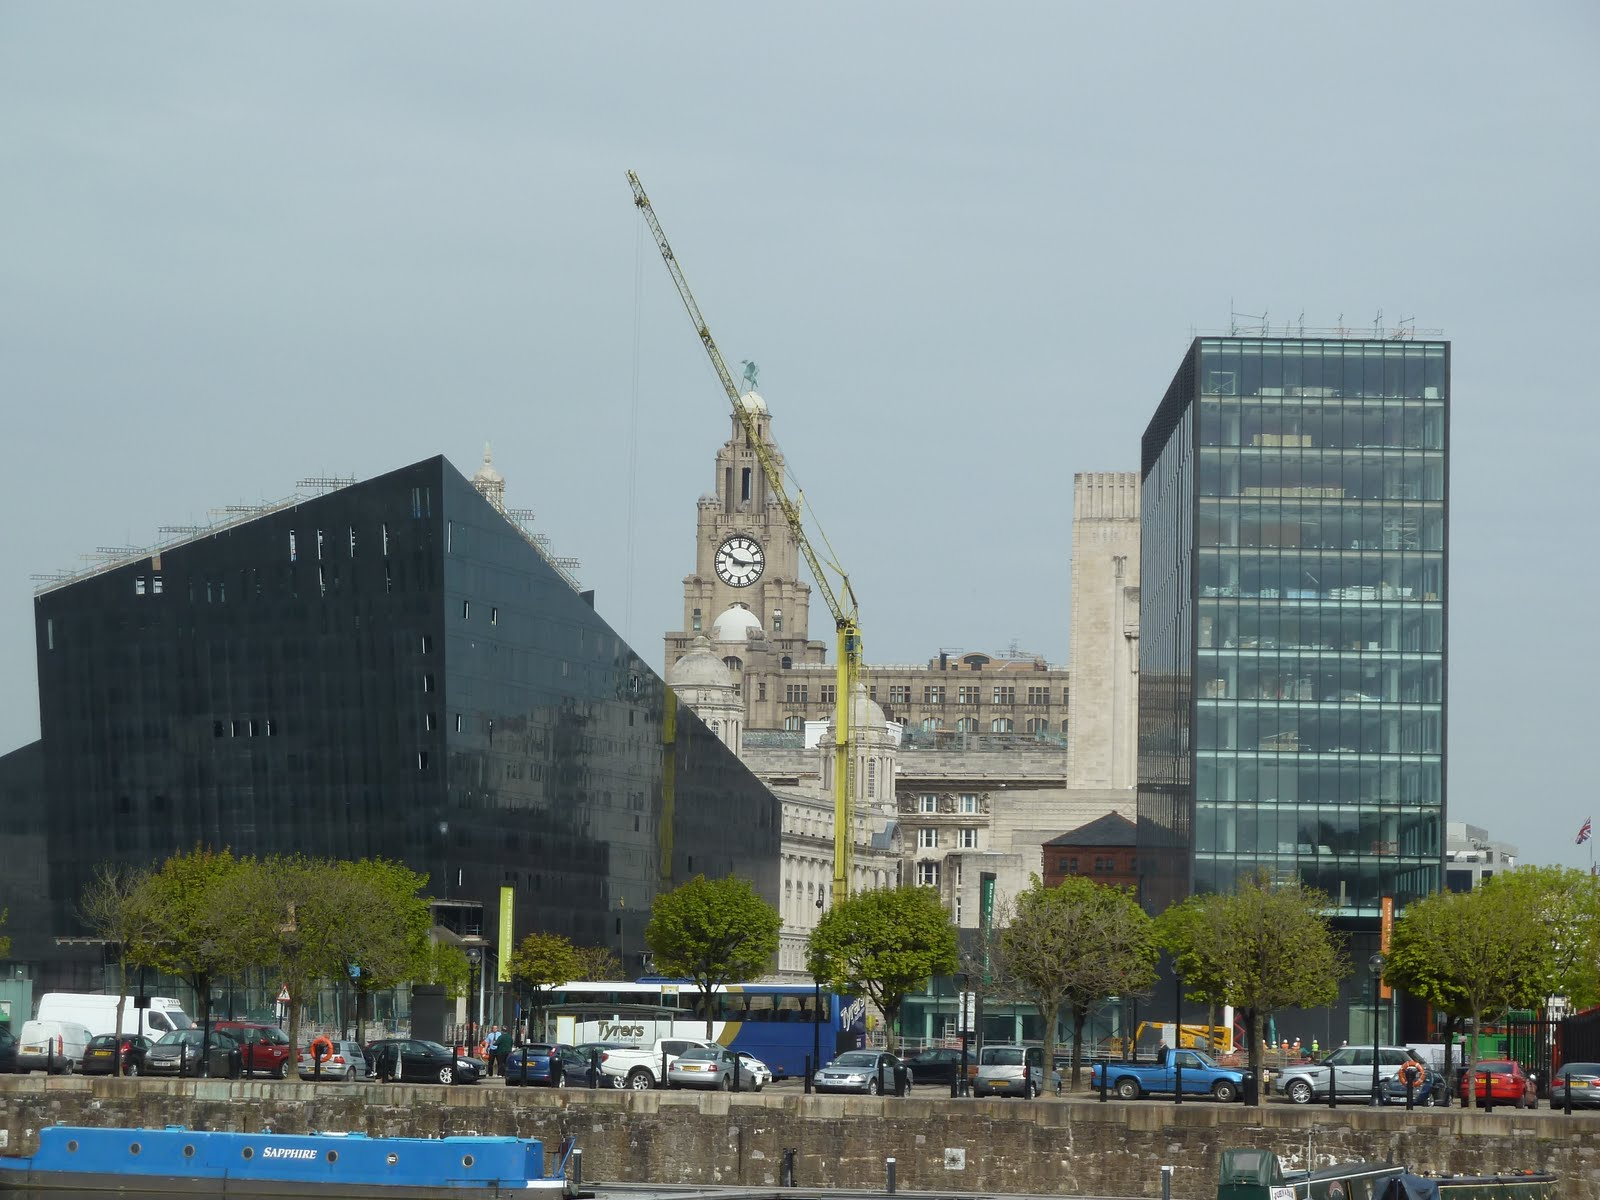 The unimaginative piece of modern design clearly blocks views of the Liver Building